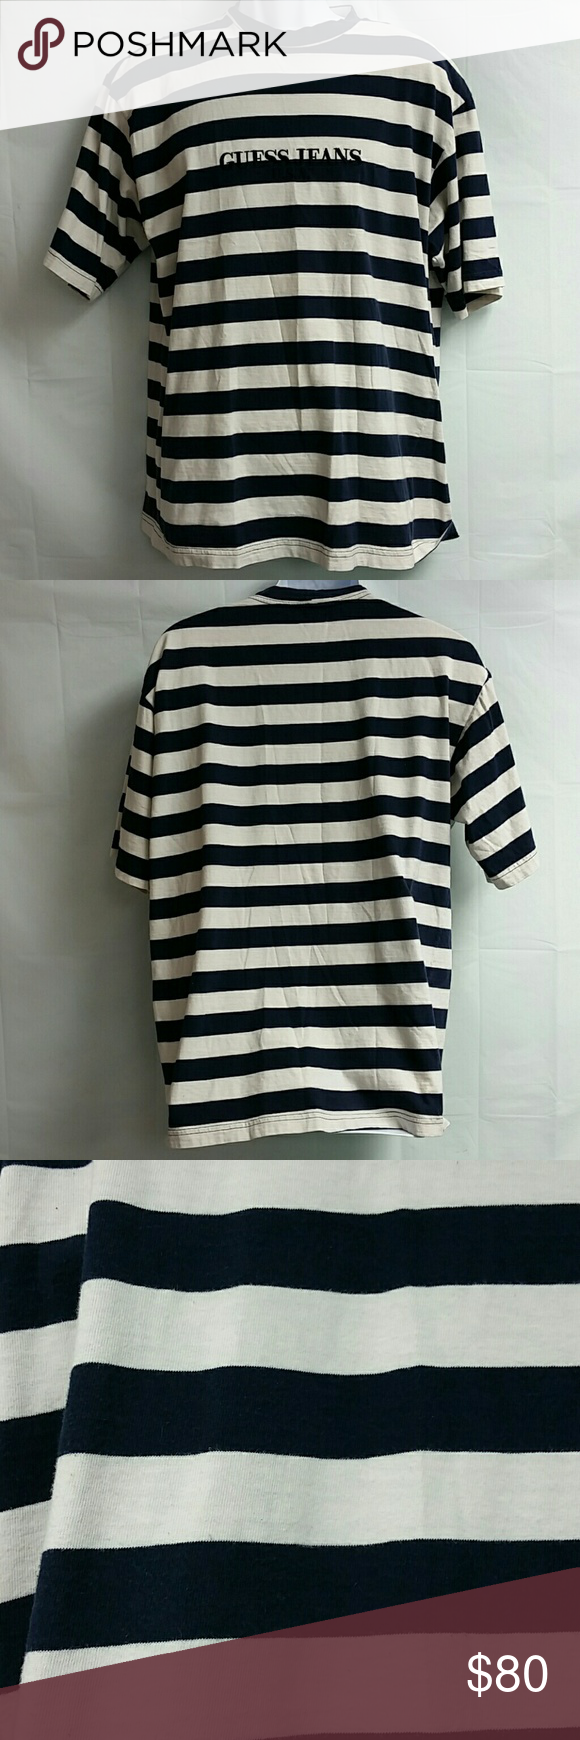 61e02af11291 Guess Jeans Black And White Striped Shirt